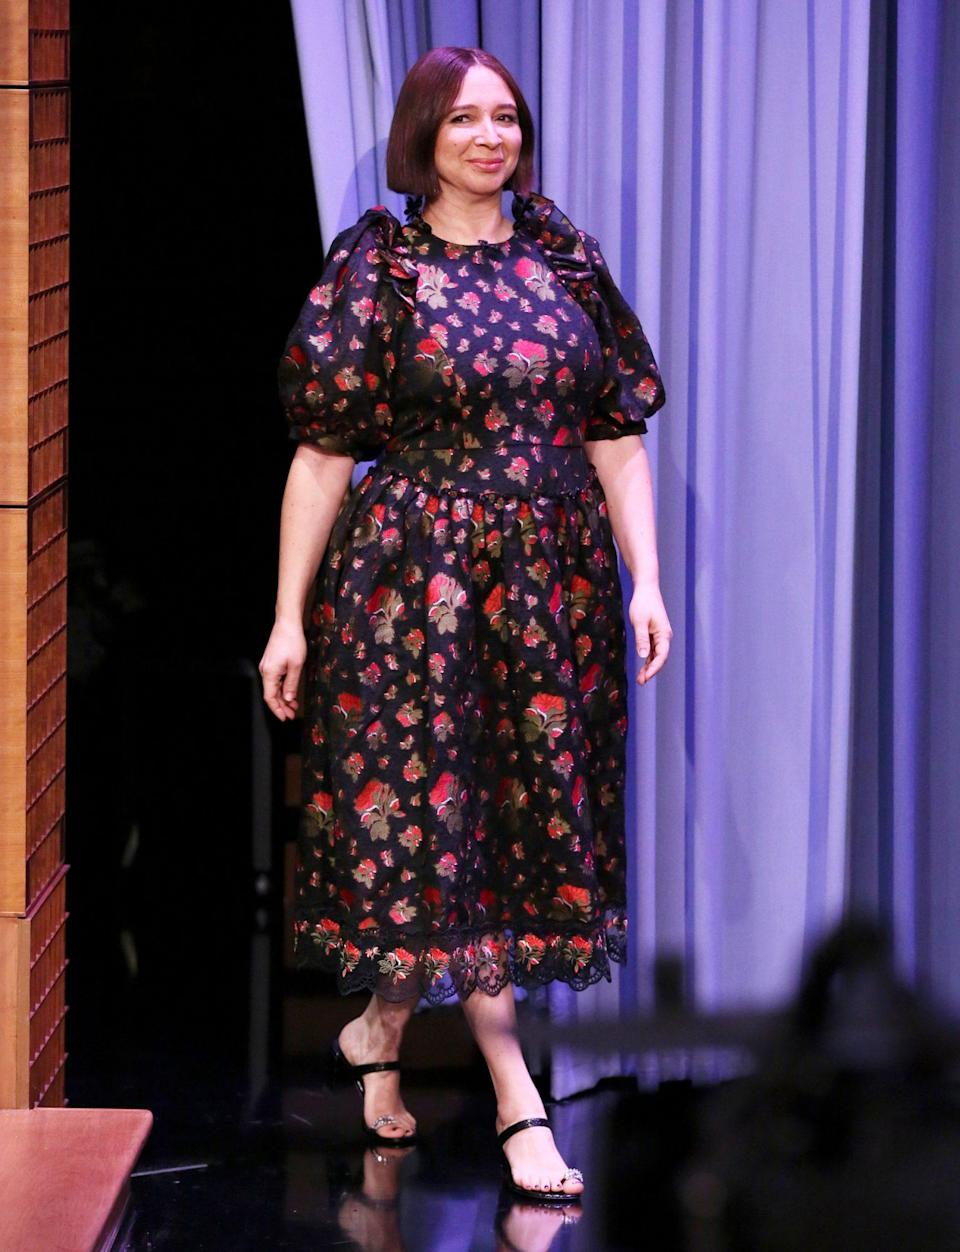 <p>Maya Rudolph makes a grand entrance in a floral dress on Thursday's episode of <i>The Tonight Show Starring Jimmy Fallon</i> in N.Y.C. </p>